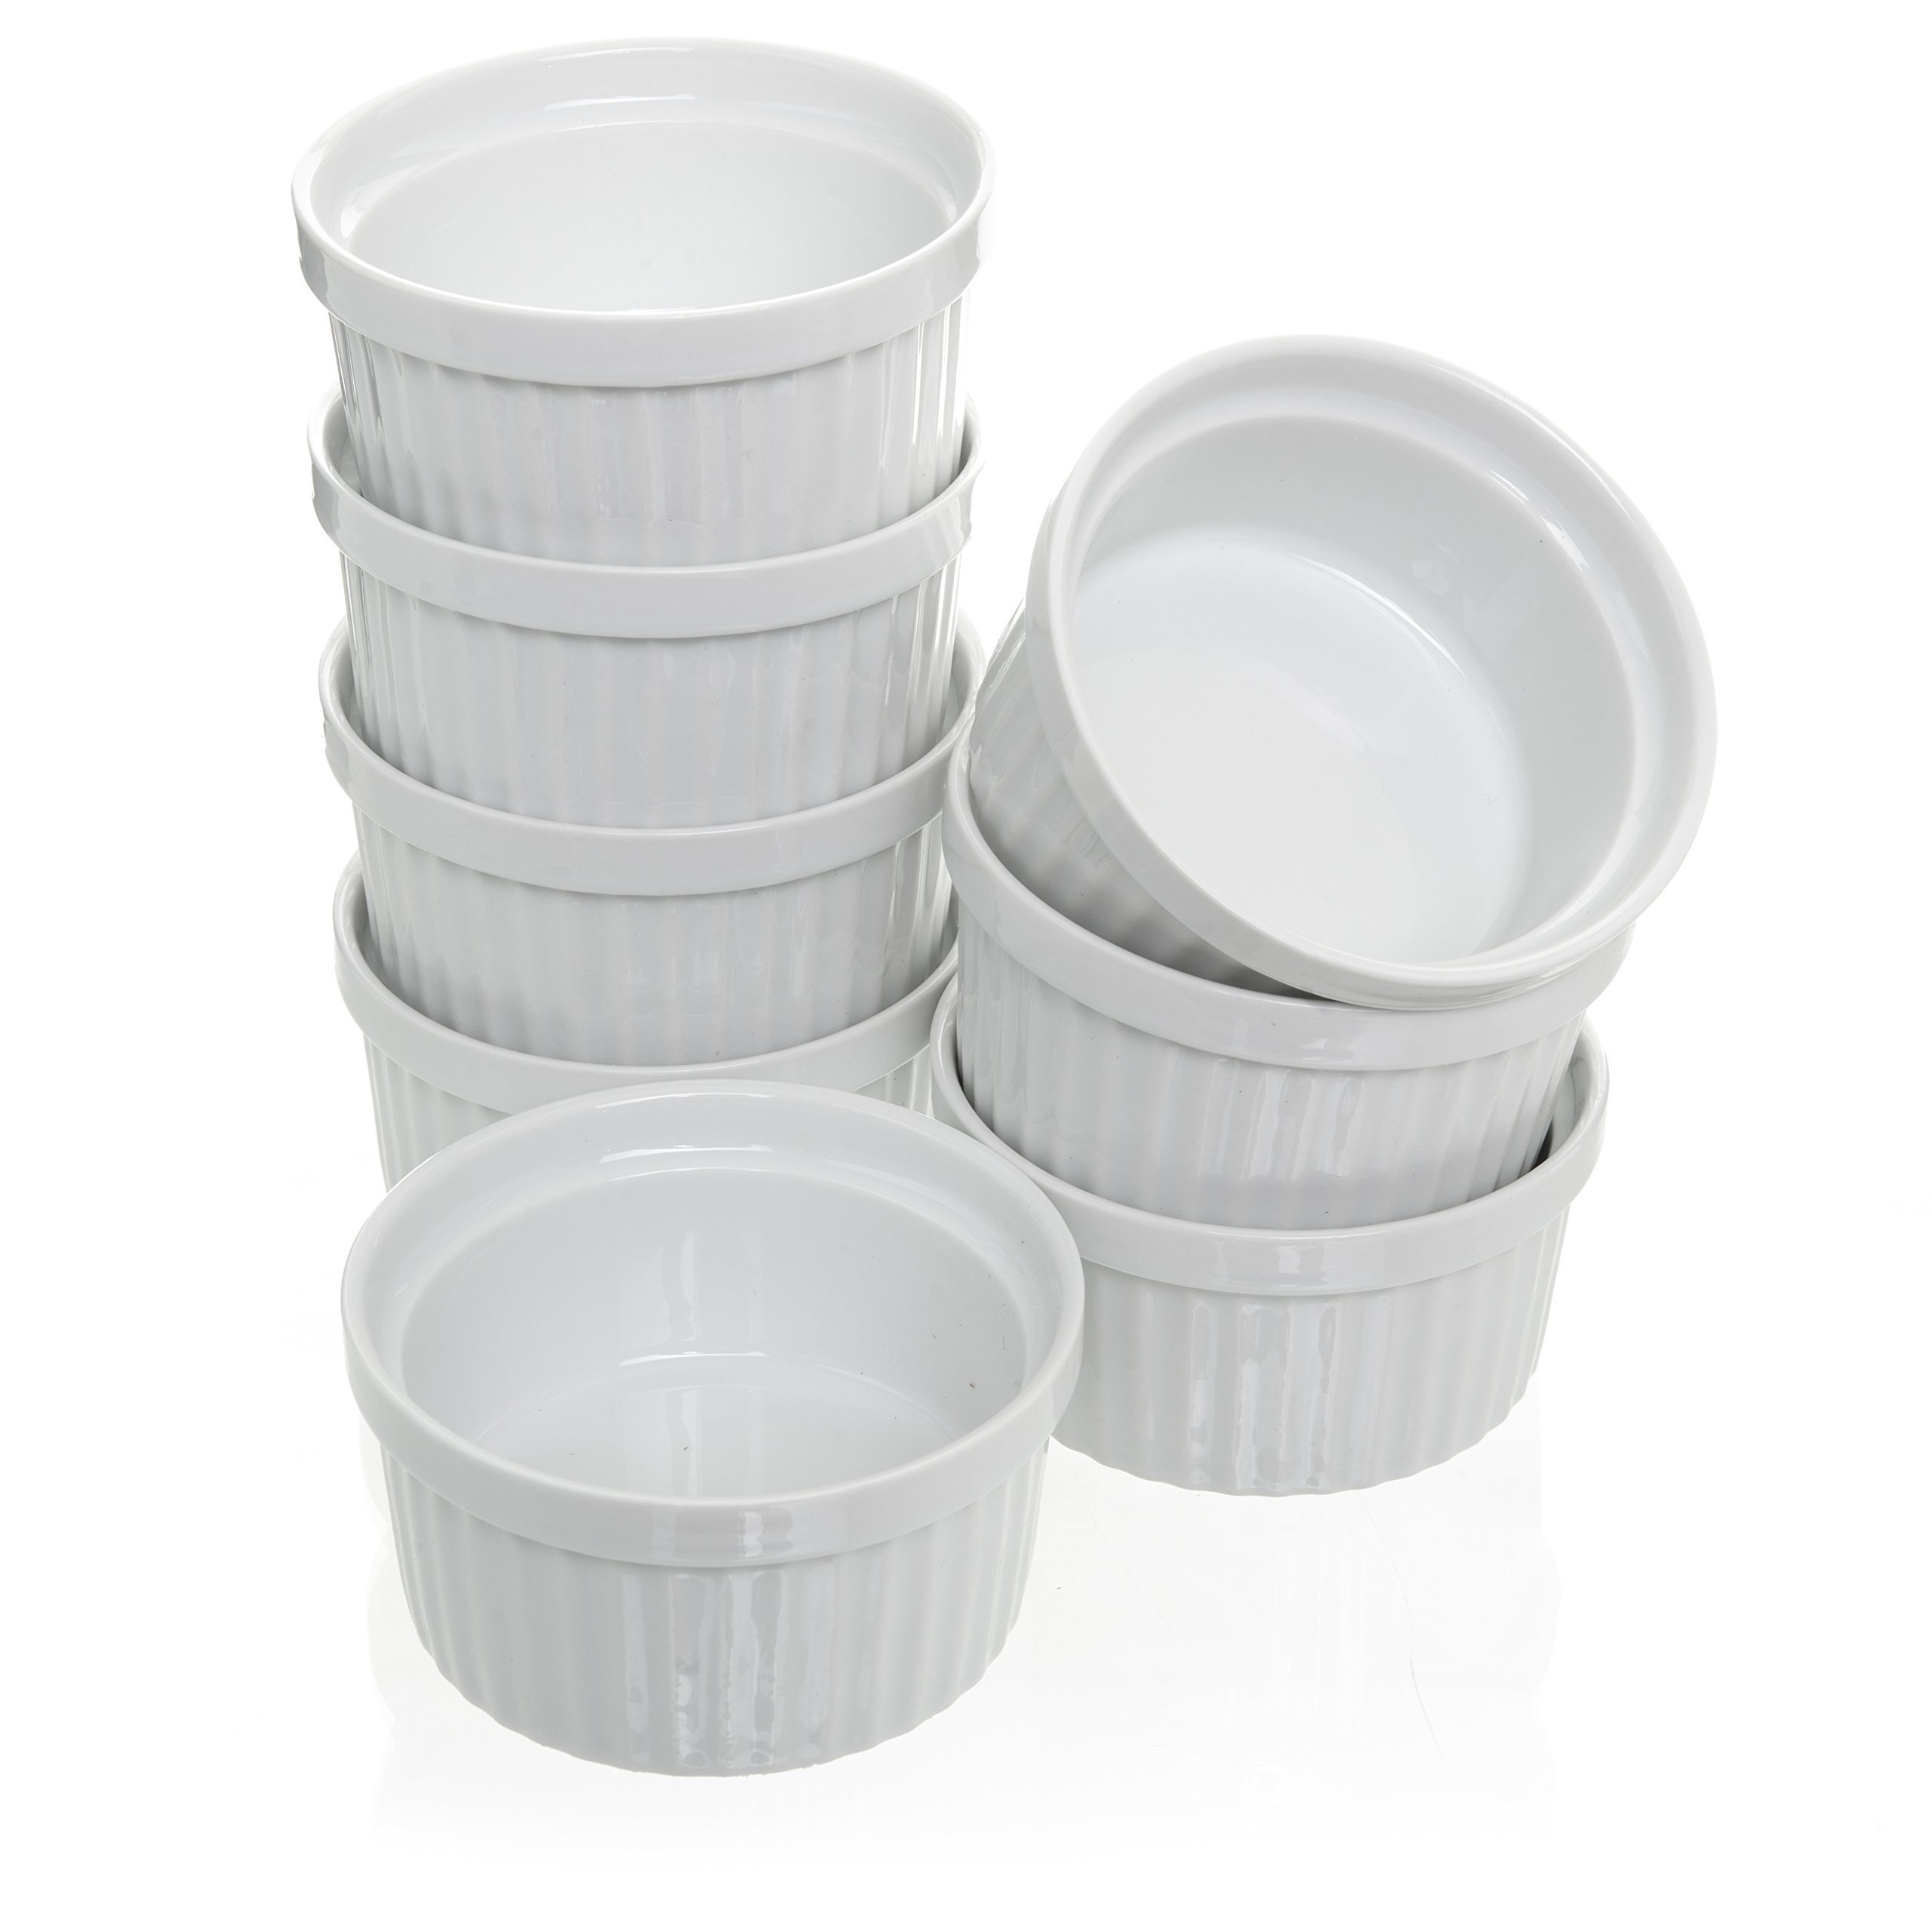 (Set of 8) 4 oz. Porcelain Ramekins, White Bakeware, Soufflé Cups Dishes, Creme Brulee, Pudding, Custard Cups, Dessert Bowls, Condiment Servers by California Home Goods